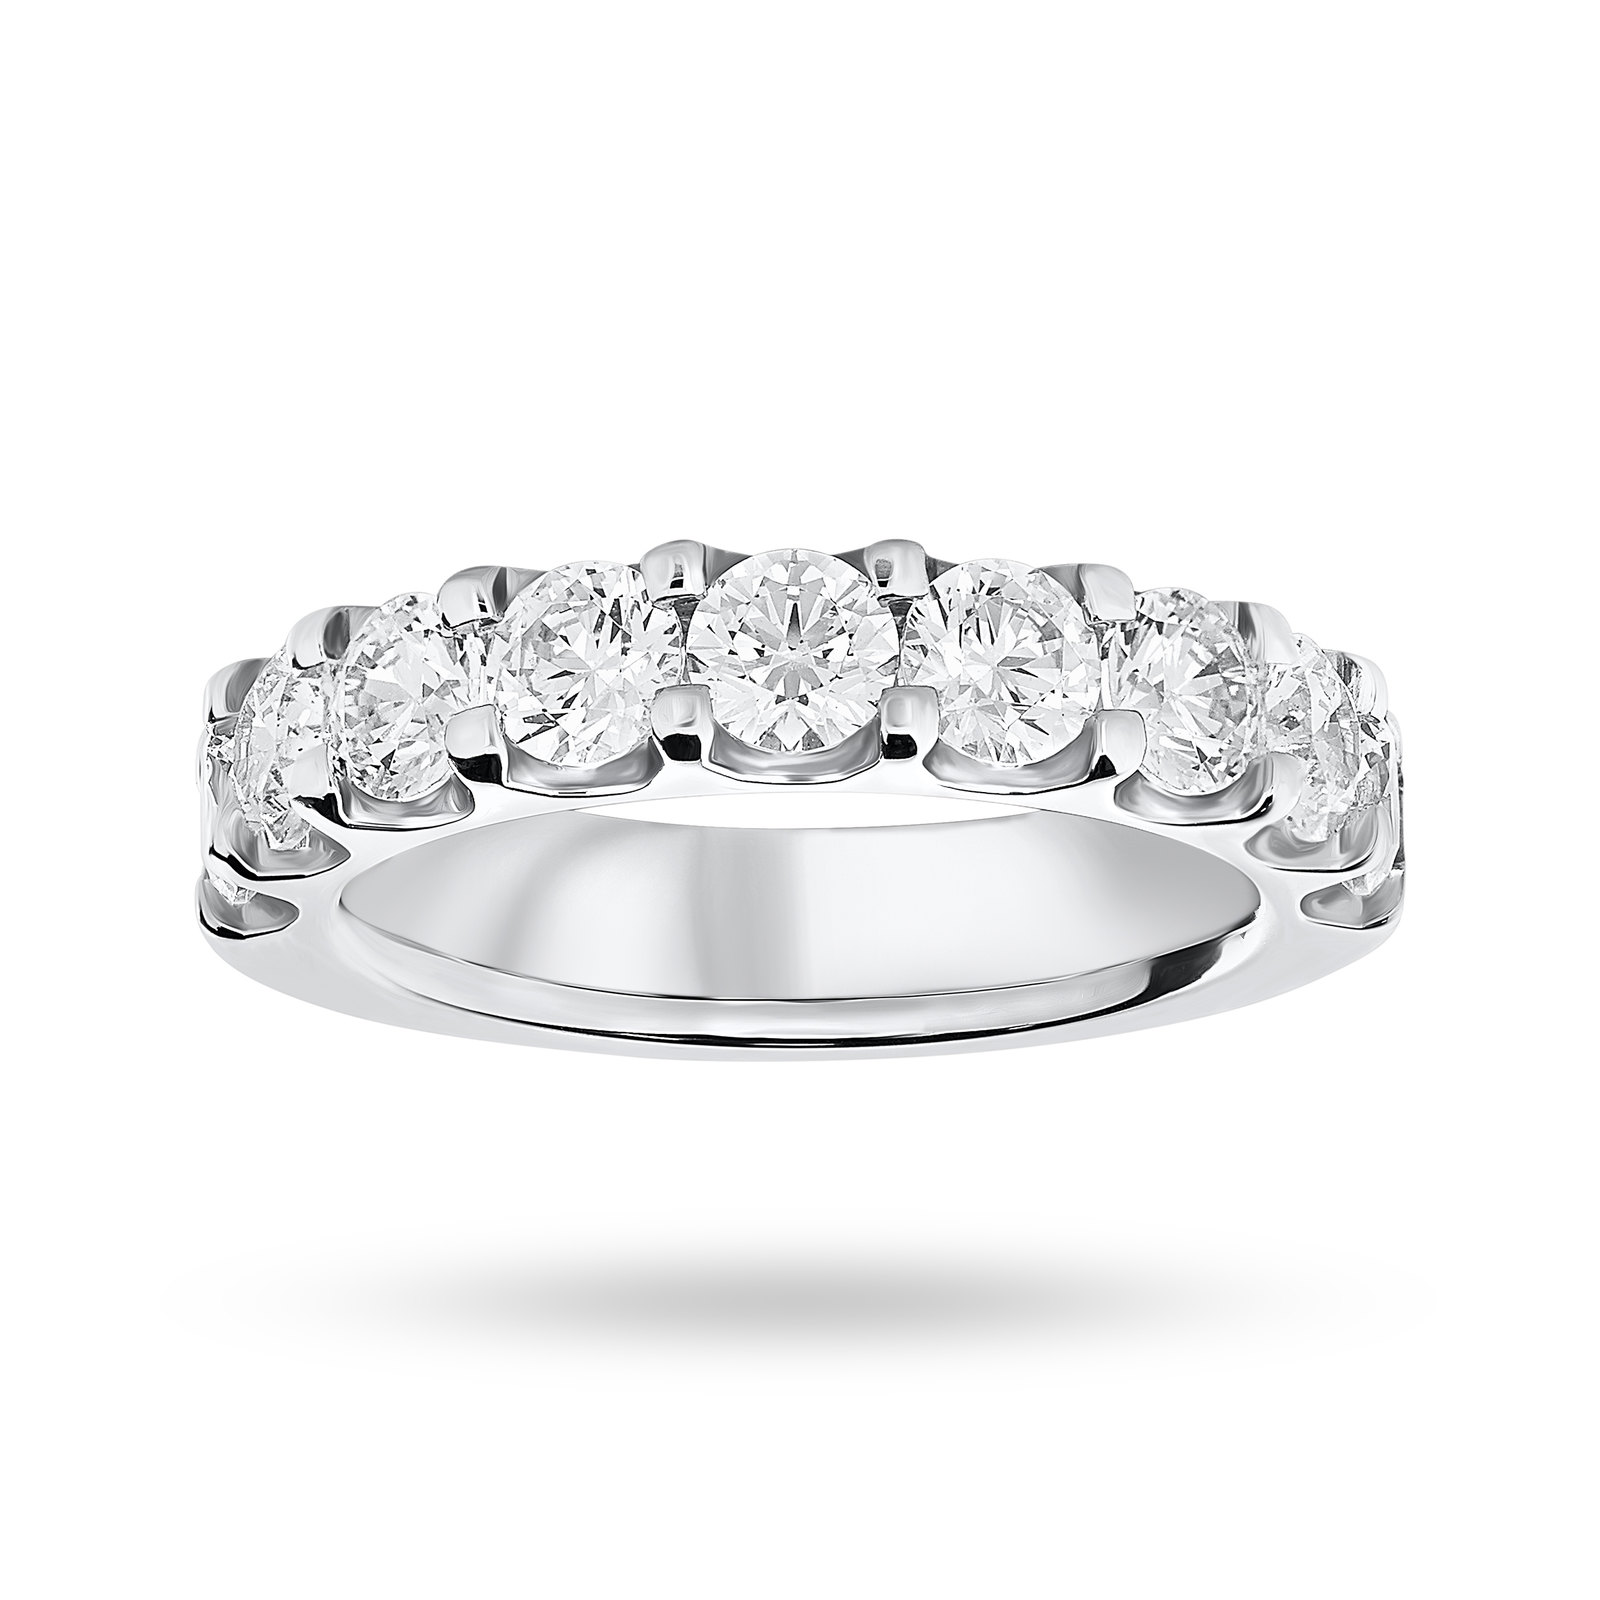 18 Carat White Gold 2.10 Carat Brilliant Cut Half Eternity